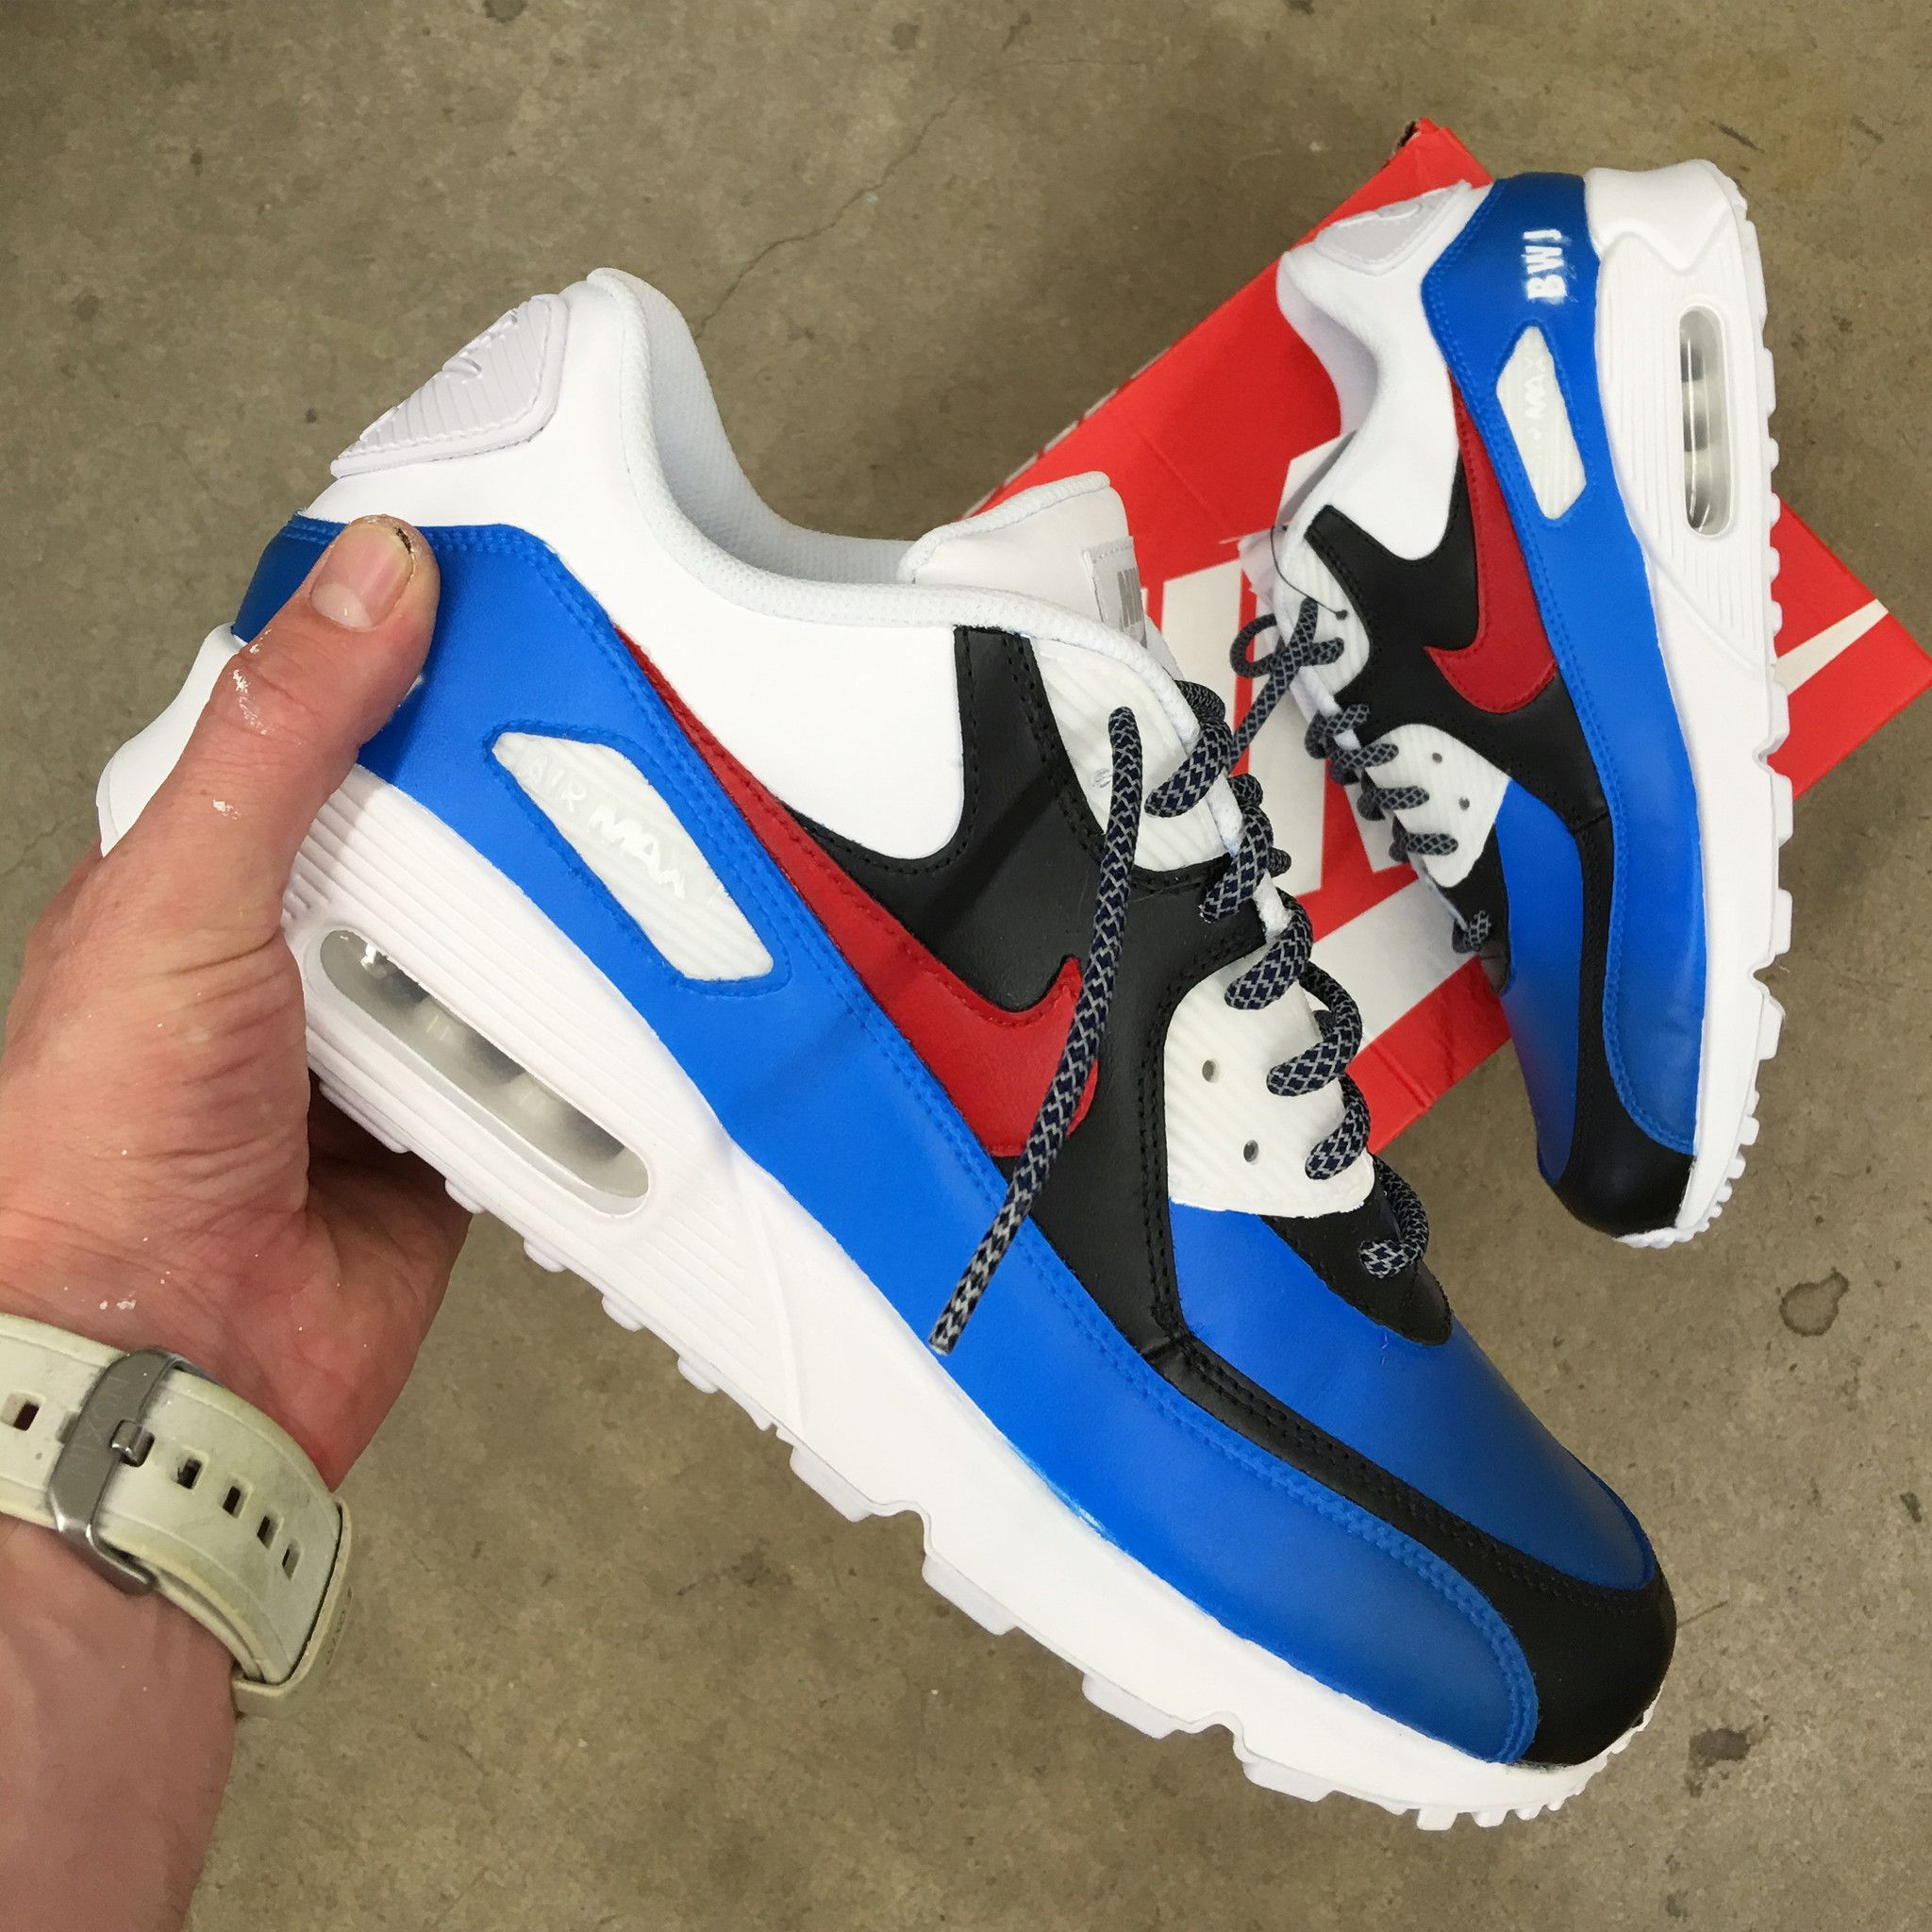 best value 165e3 96891 These custom hand painted Nike AM90 shoes have been specially painted to  have a blue gradient and black section on the uppers. The shoes have been  painted ...